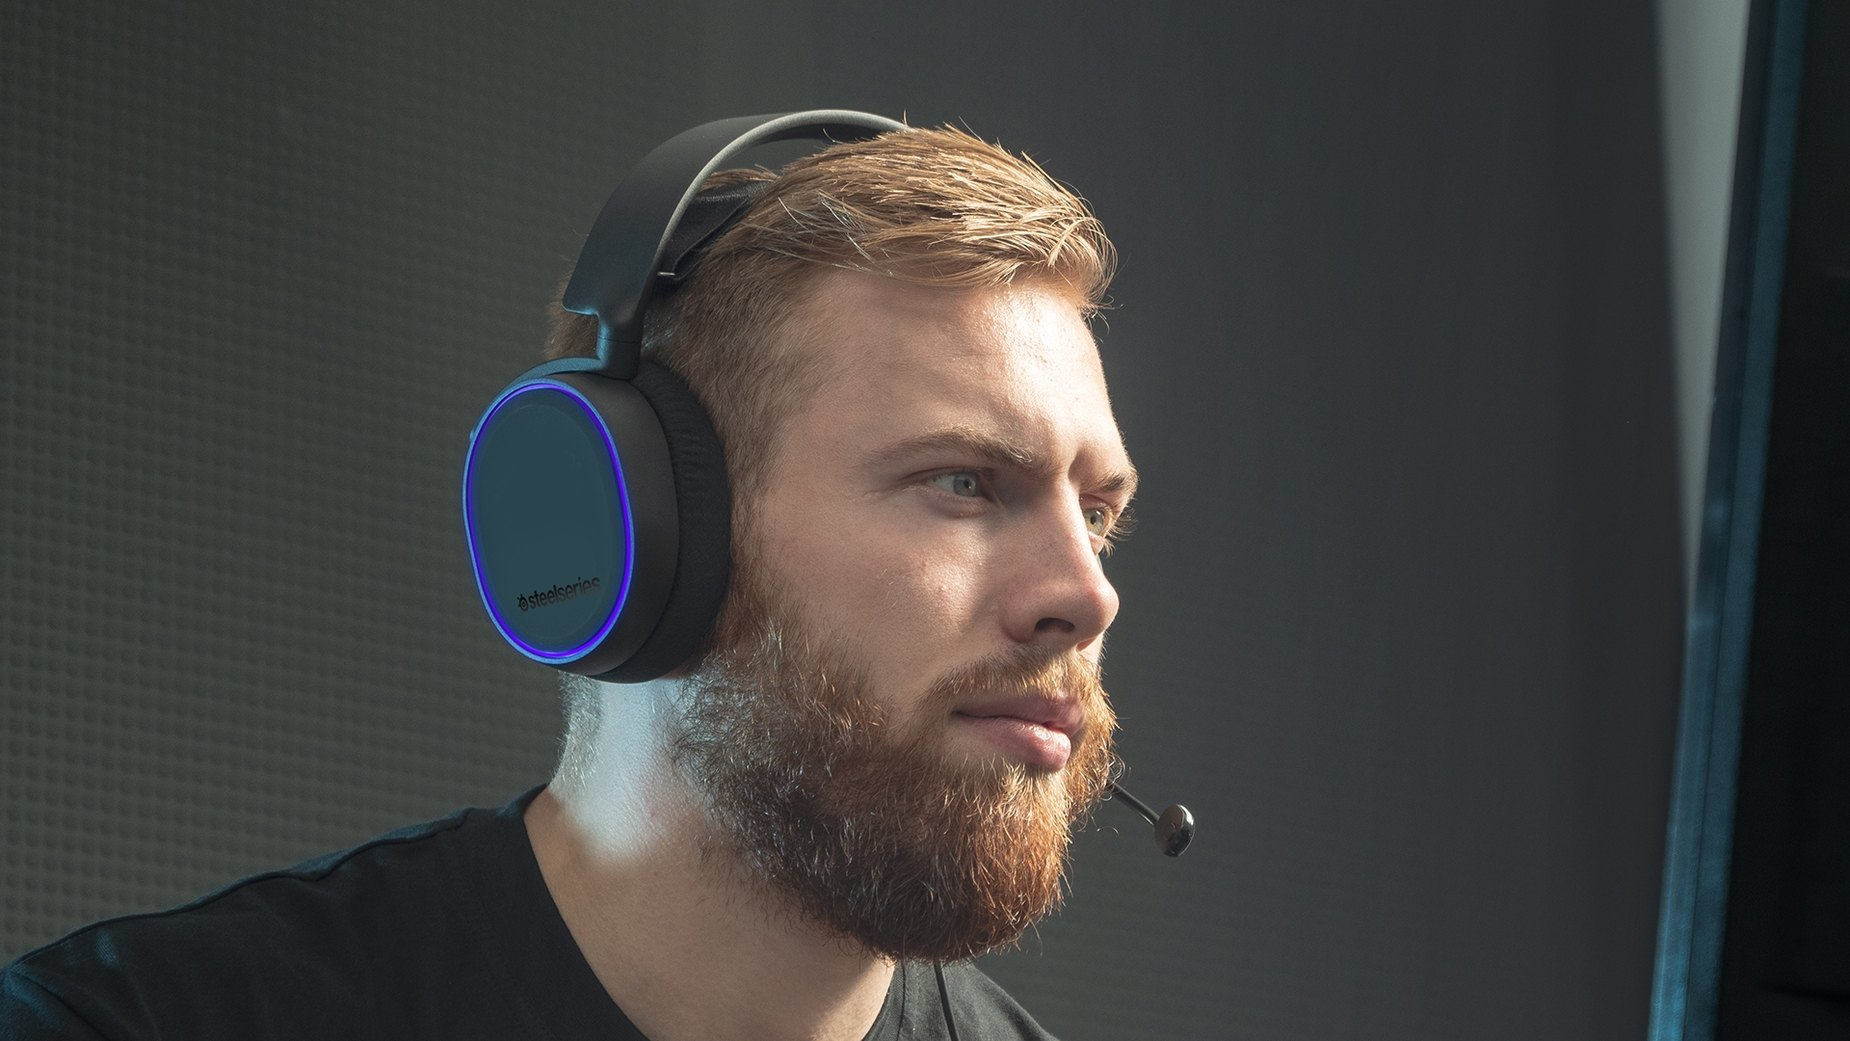 Gamer wearing ARCTIS 5 headset with RGB illumination around the ear cup.